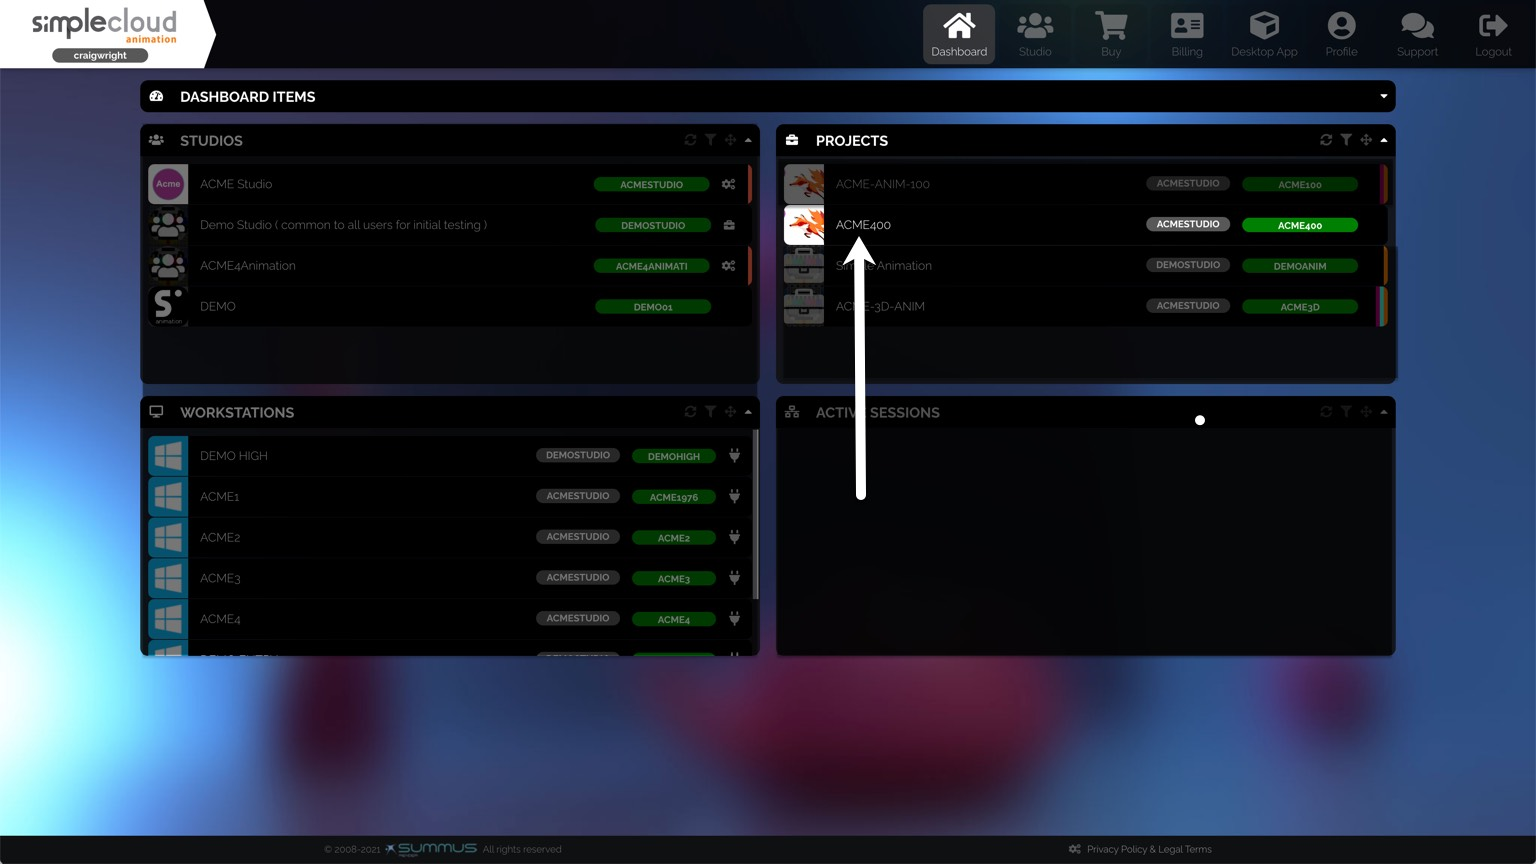 Dashboard has a Projects section in the top right where you can select a project.